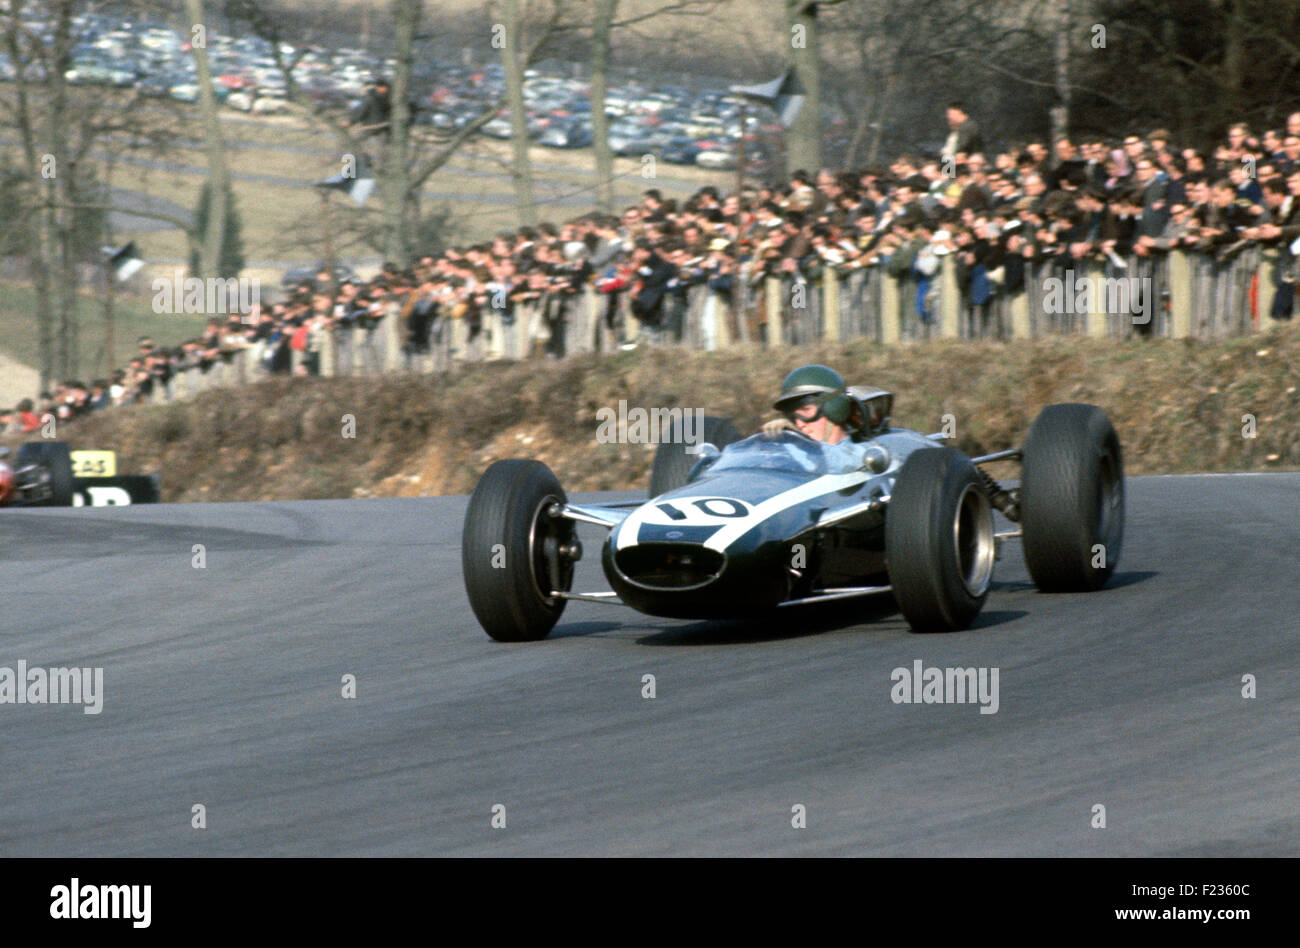 10 Jochen Rindt in Cooper at Druid's Hill Hairpin,-Brands Hatch, I Race of Champions 13 March 1965 - Stock Image